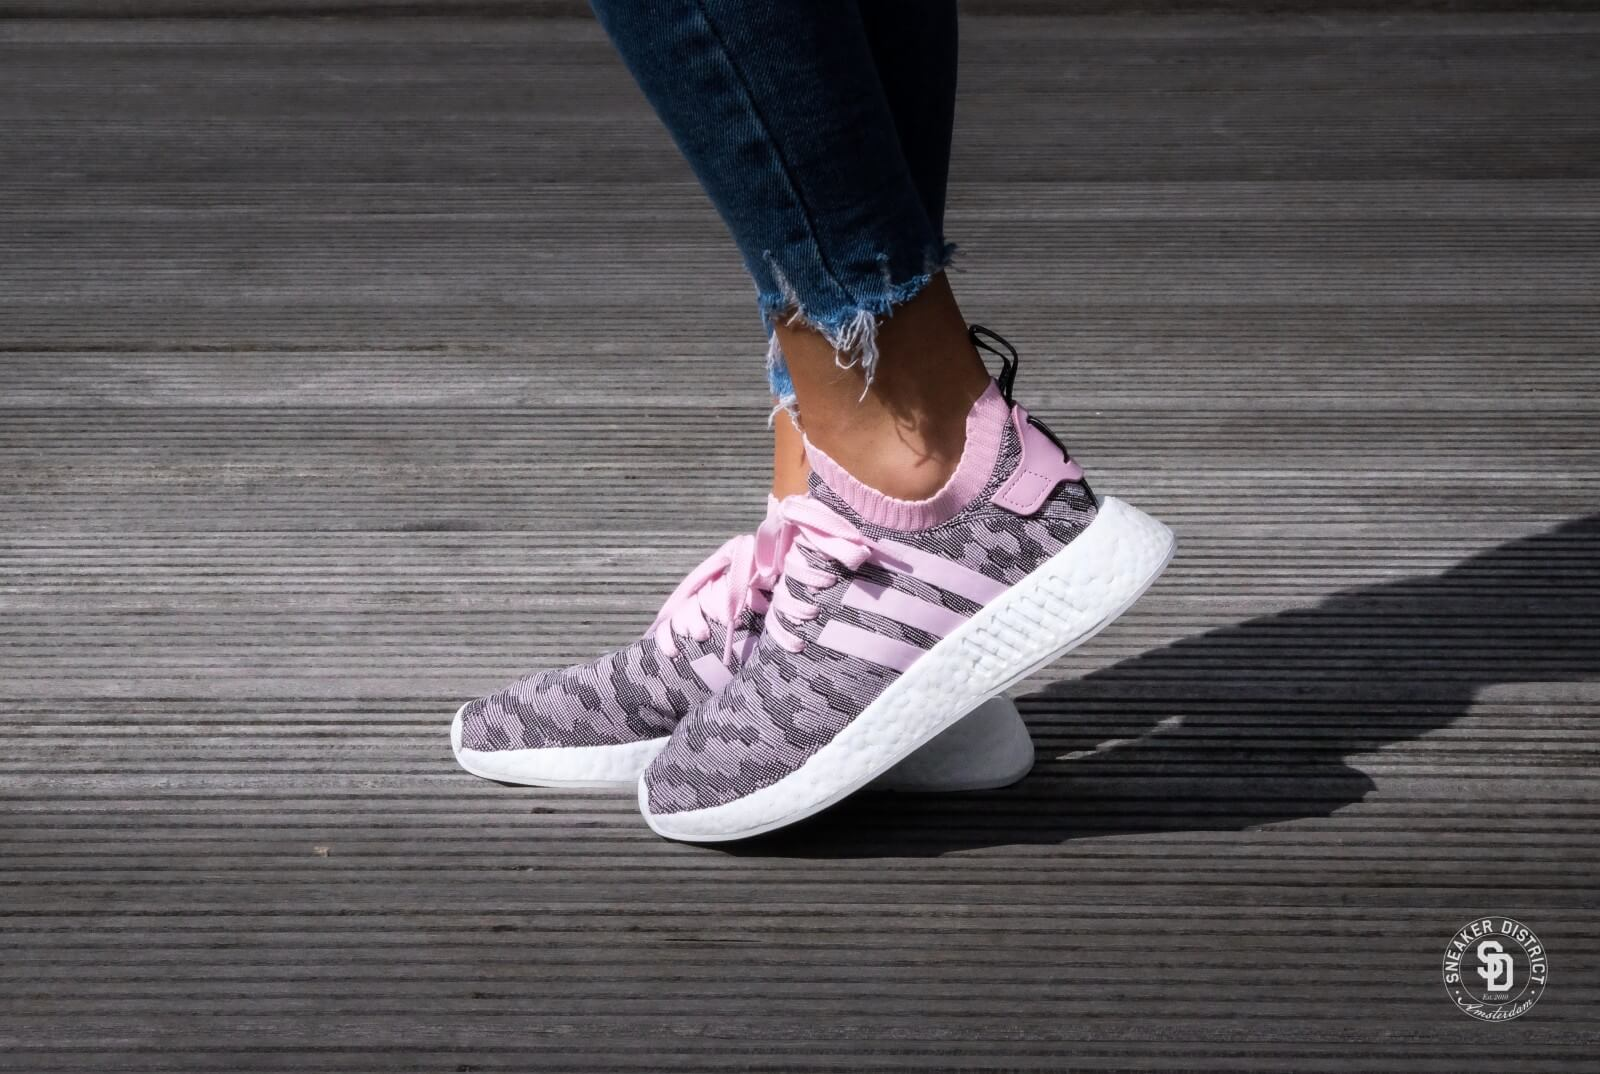 adidas nmd r2 women pink adidas shoes black and white